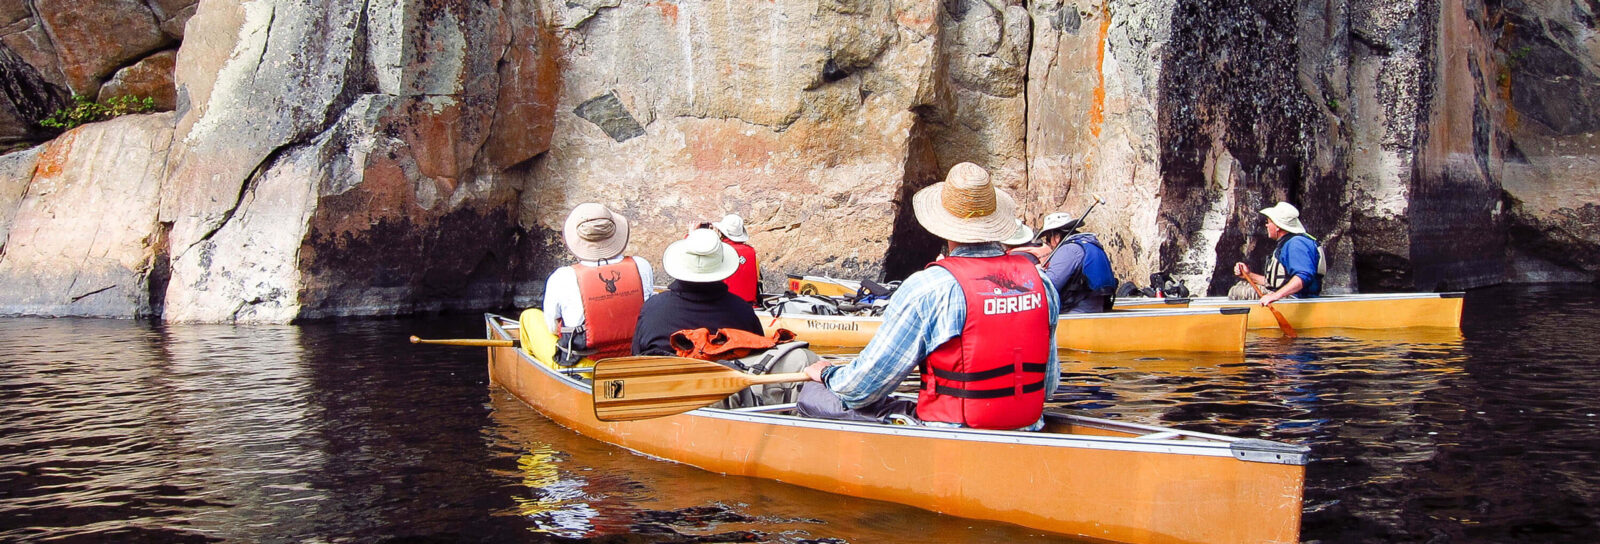 Canoes gathering by a rock face in the BWCA